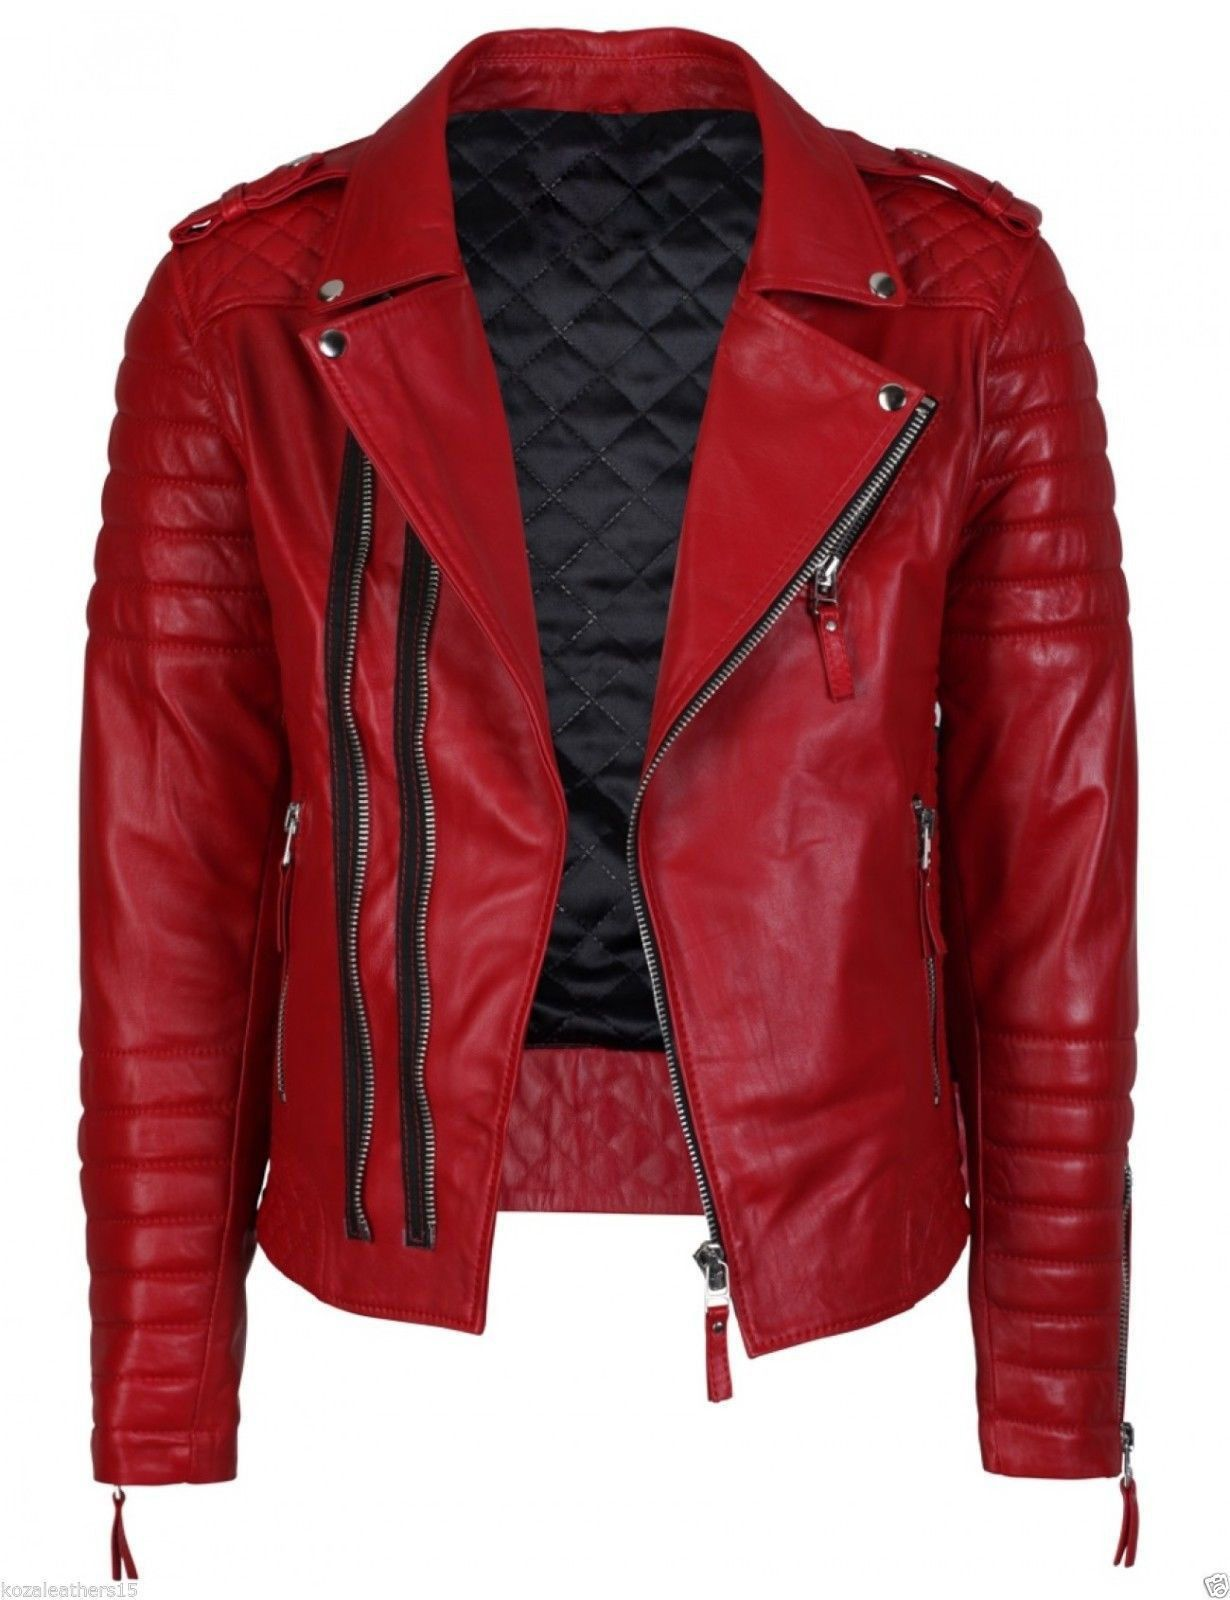 Men/'s Quilted Red and Black Faux Leather Designer Motorcycle Biker Jacket